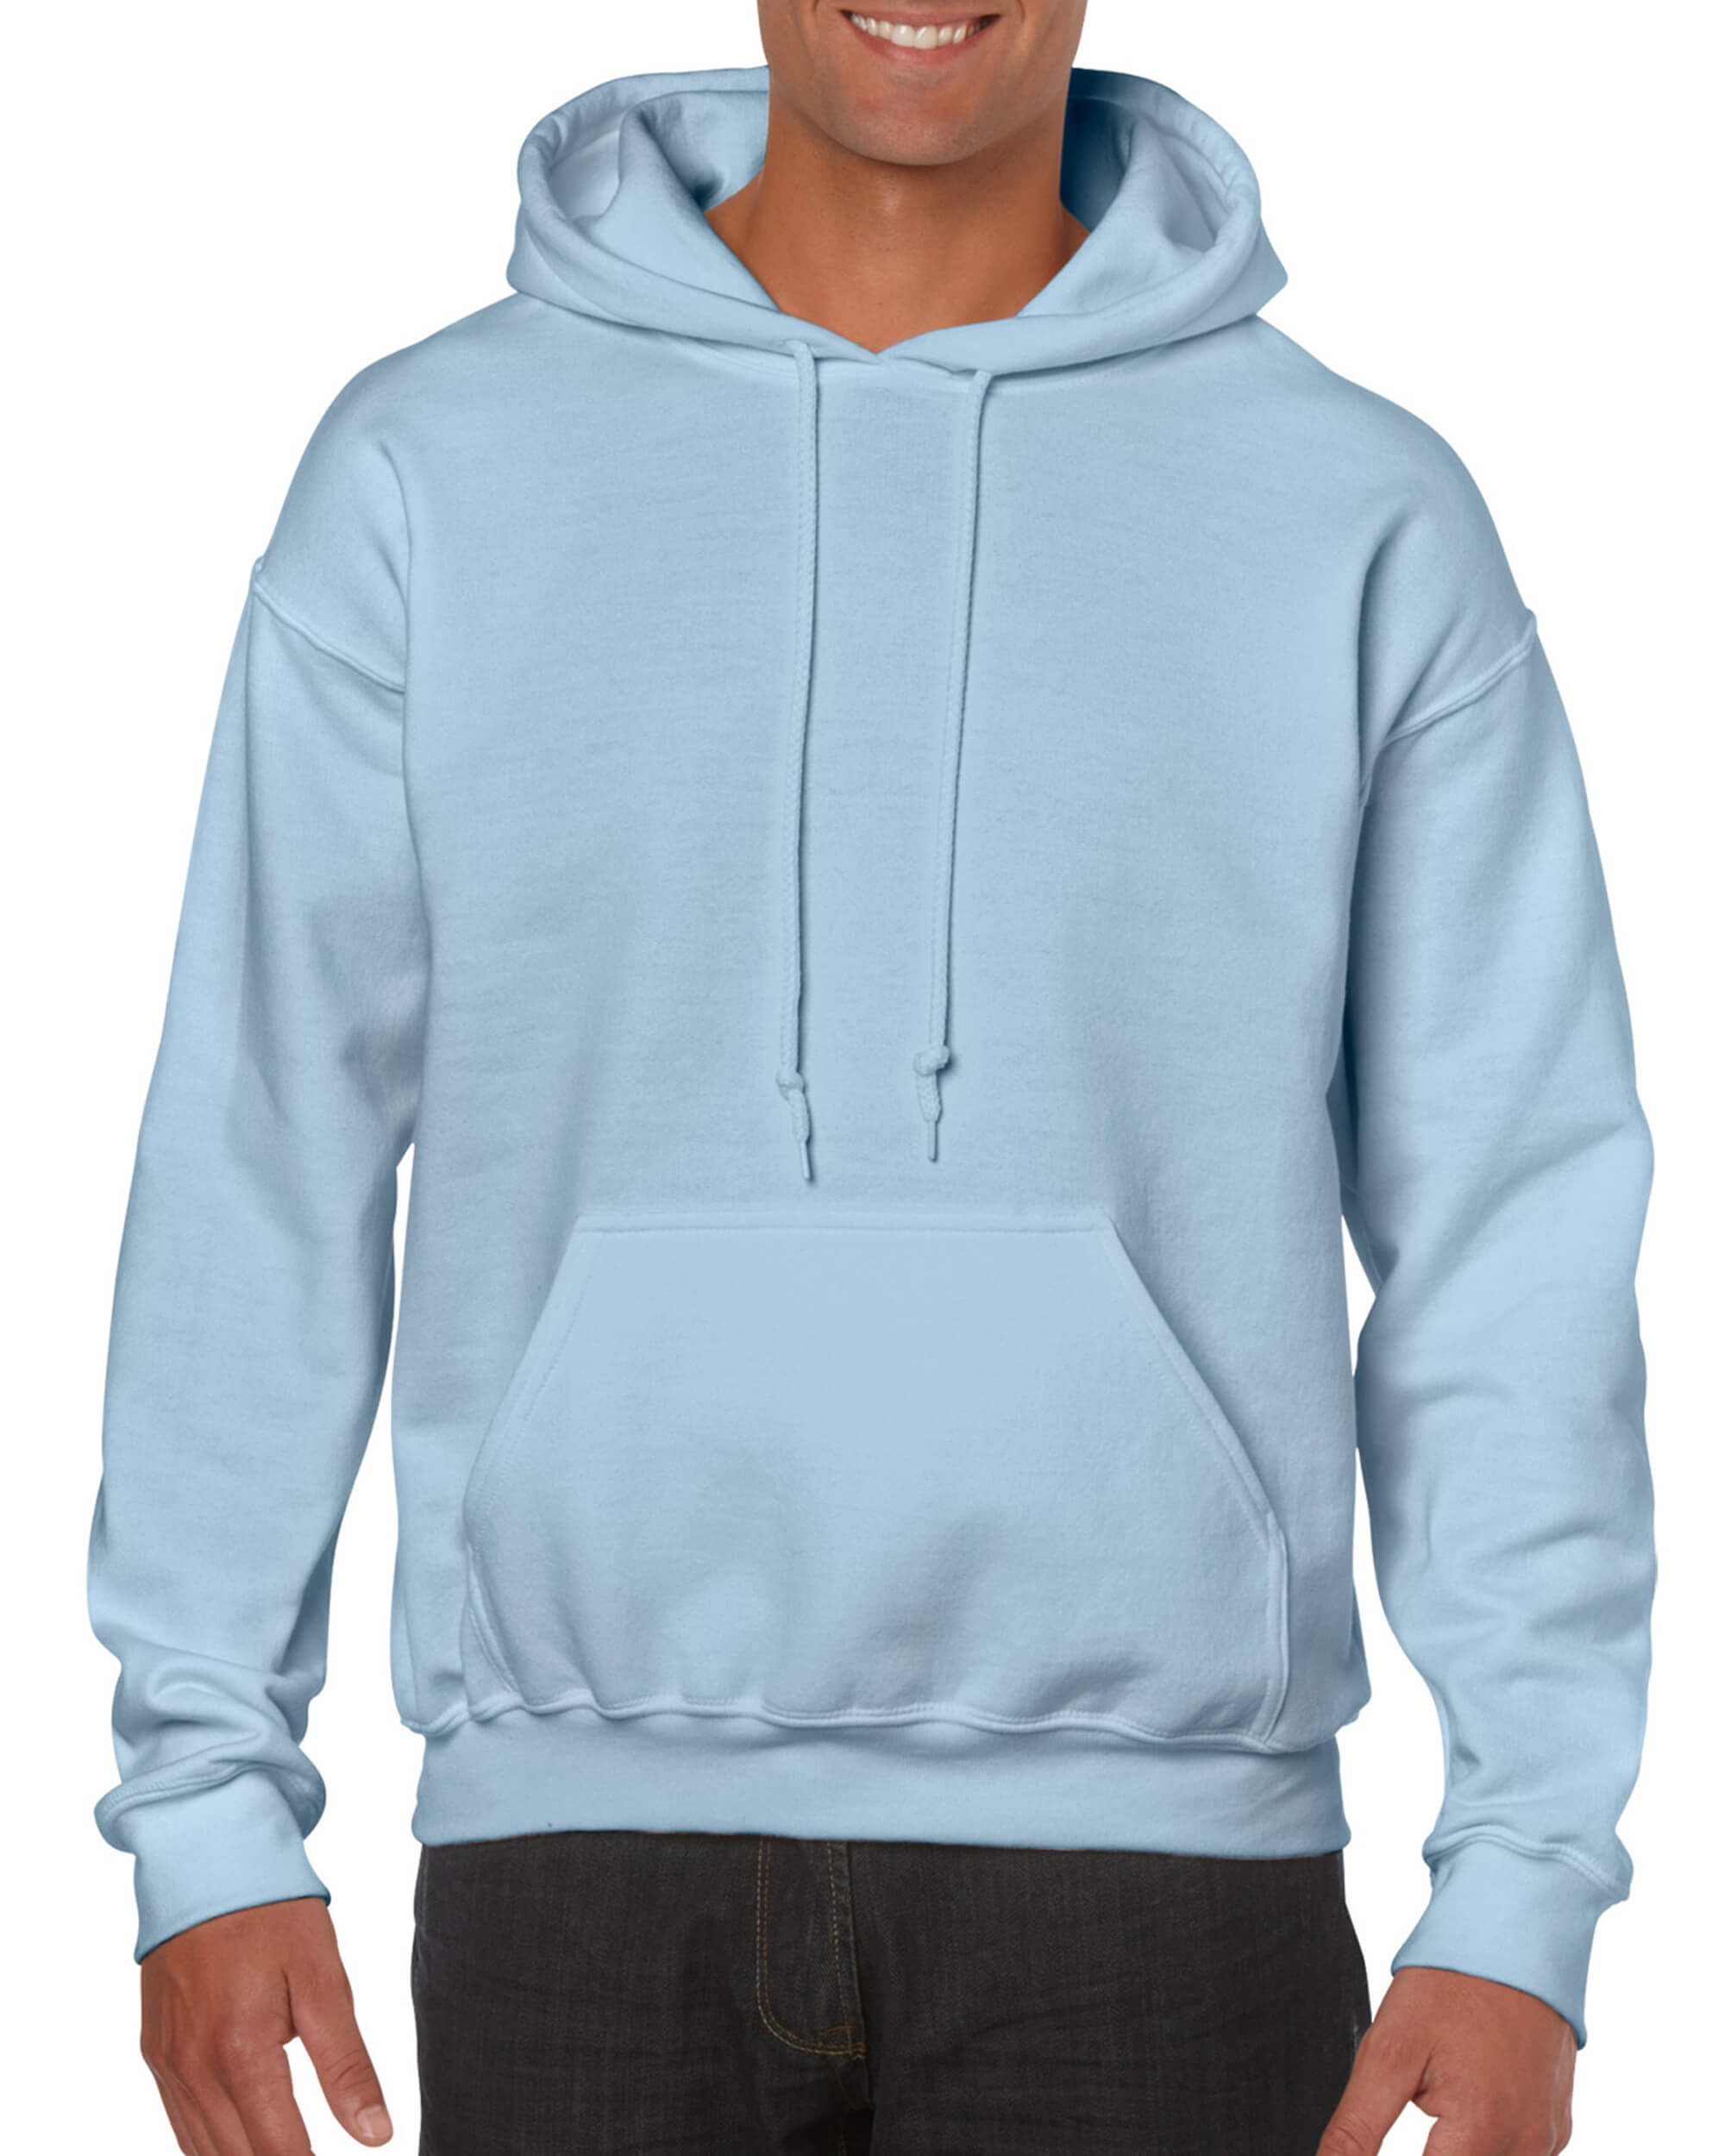 capital screw shy  Light Blue Pullover Hoodie - T-Shirt Explosion